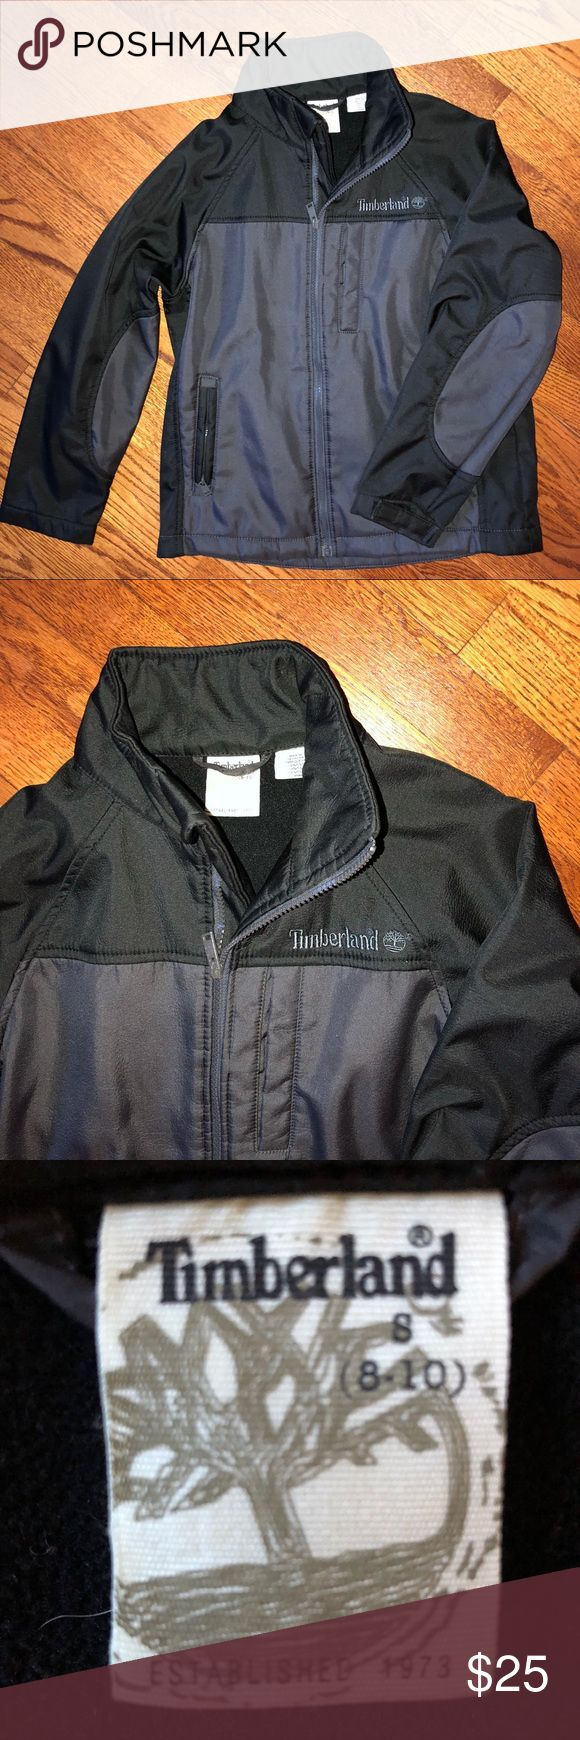 Timberland coat...Size S (8-10) Beautiful, thick, grey and black Timberland coat...Size S (8-10)...no rips or stains...fleece lined for extra warmth...from a smoke free home! Timberland Jackets & Coats